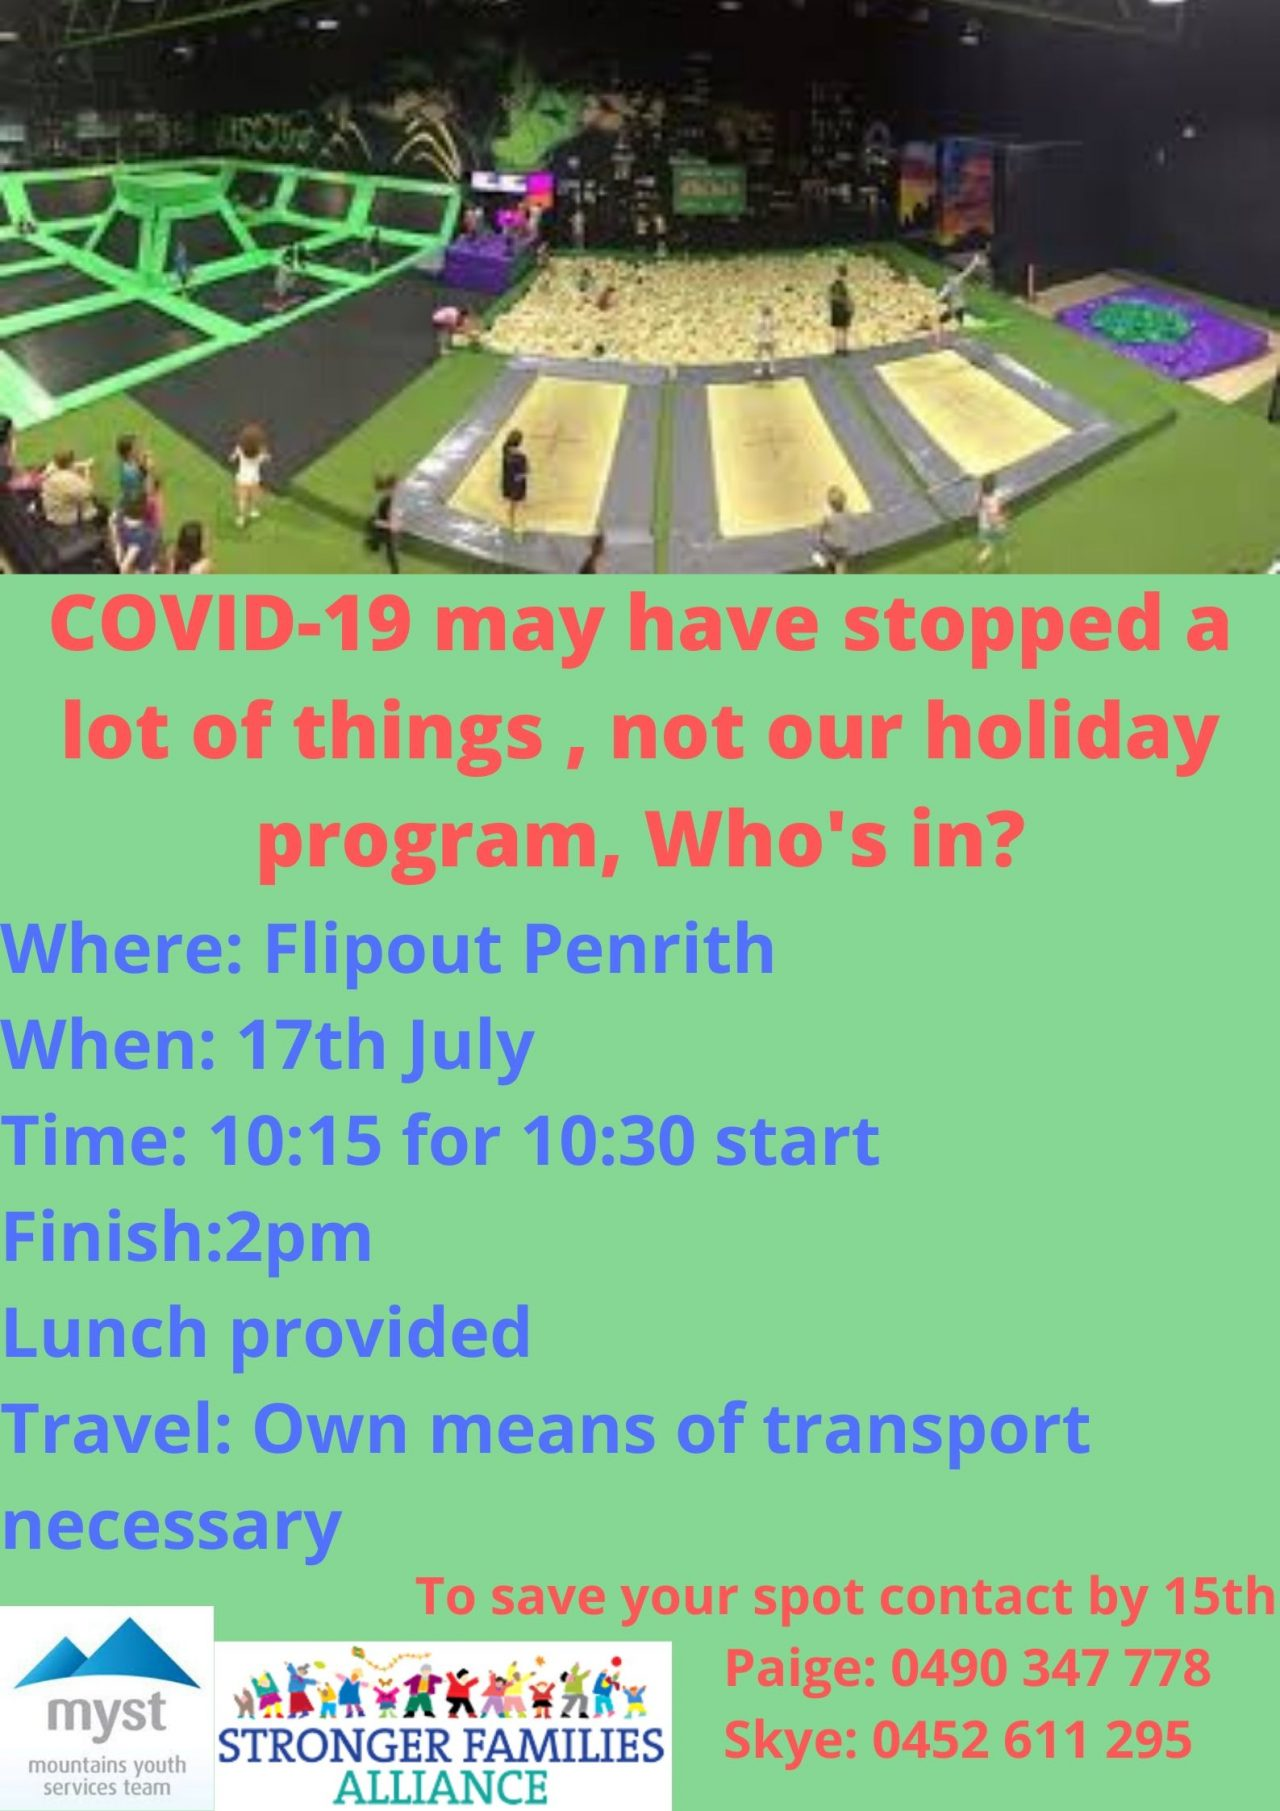 COVID-19-may-have-stopped-a-lot-of-things-not-our-holiday-program-Whos-in_-1-1280x1811.jpg